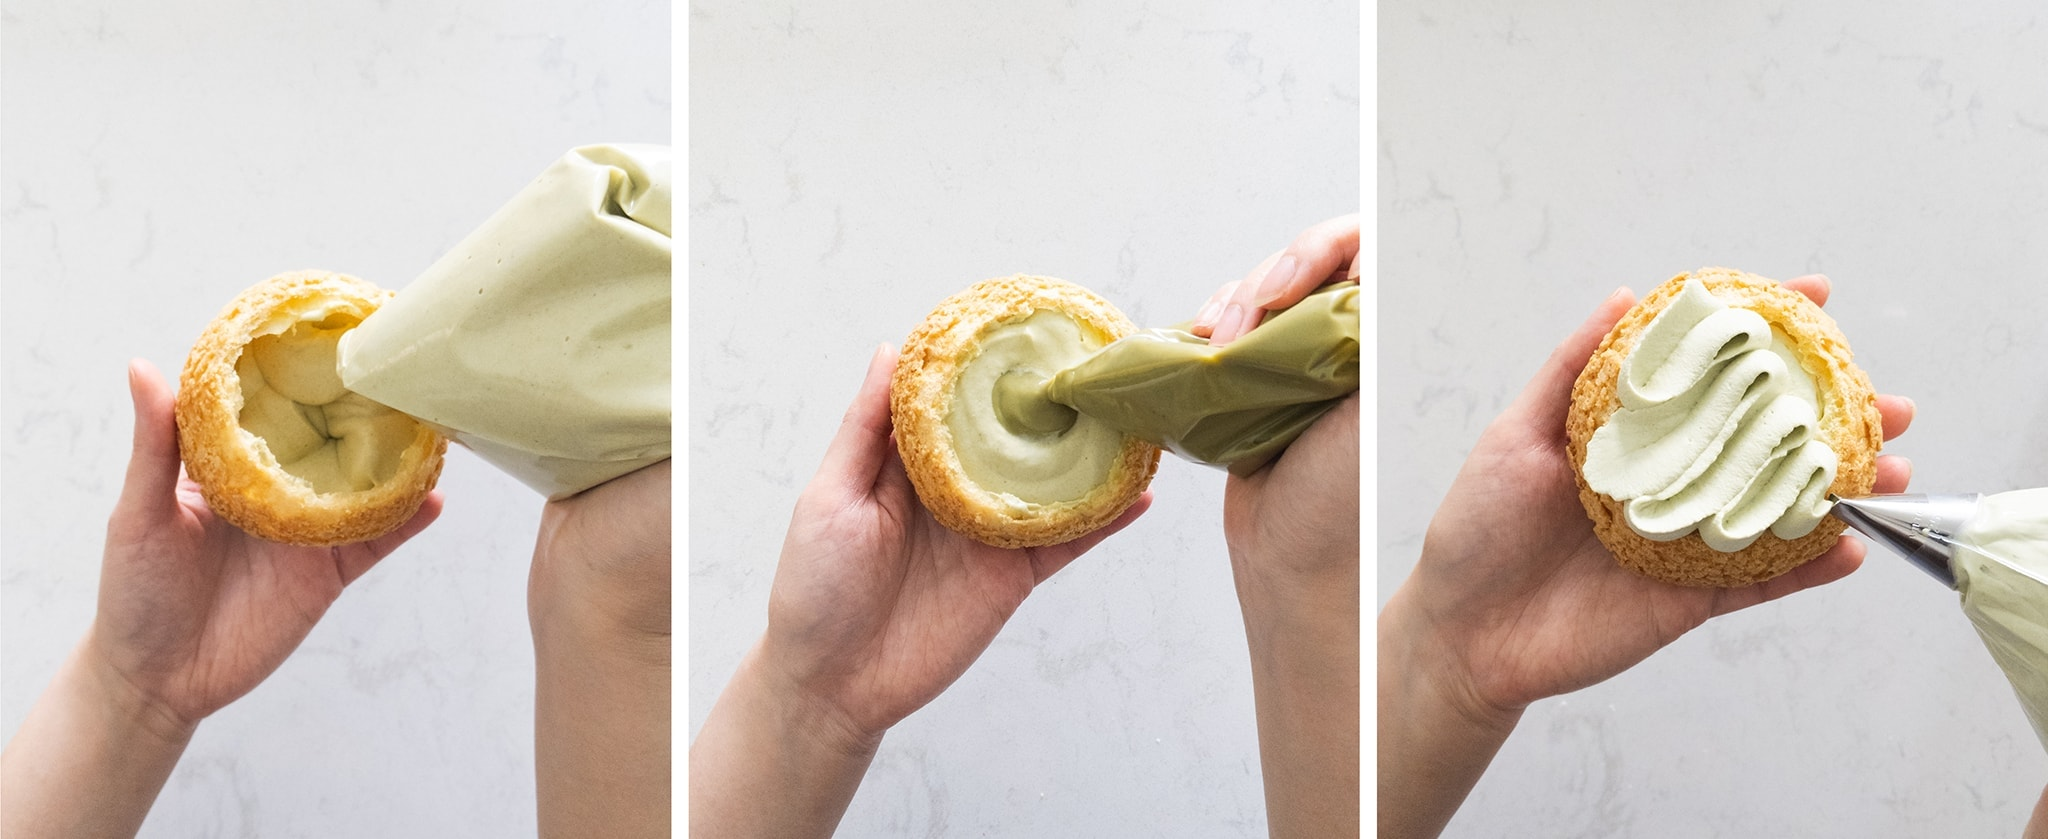 Piping matcha diplomat cream and pastry cream into choux